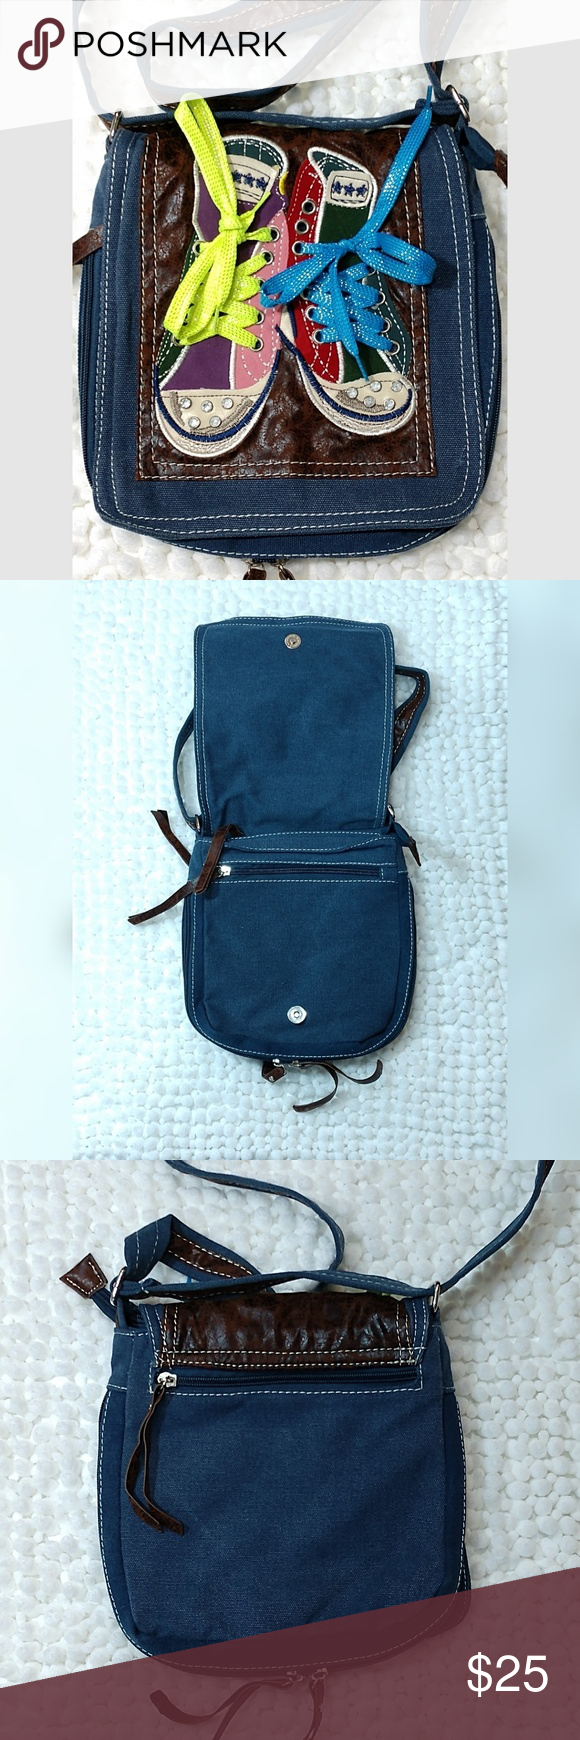 d5434d0471 Cross body purse Crossbody denim bag with converse style shoe embroidery  over a leather like top. Front